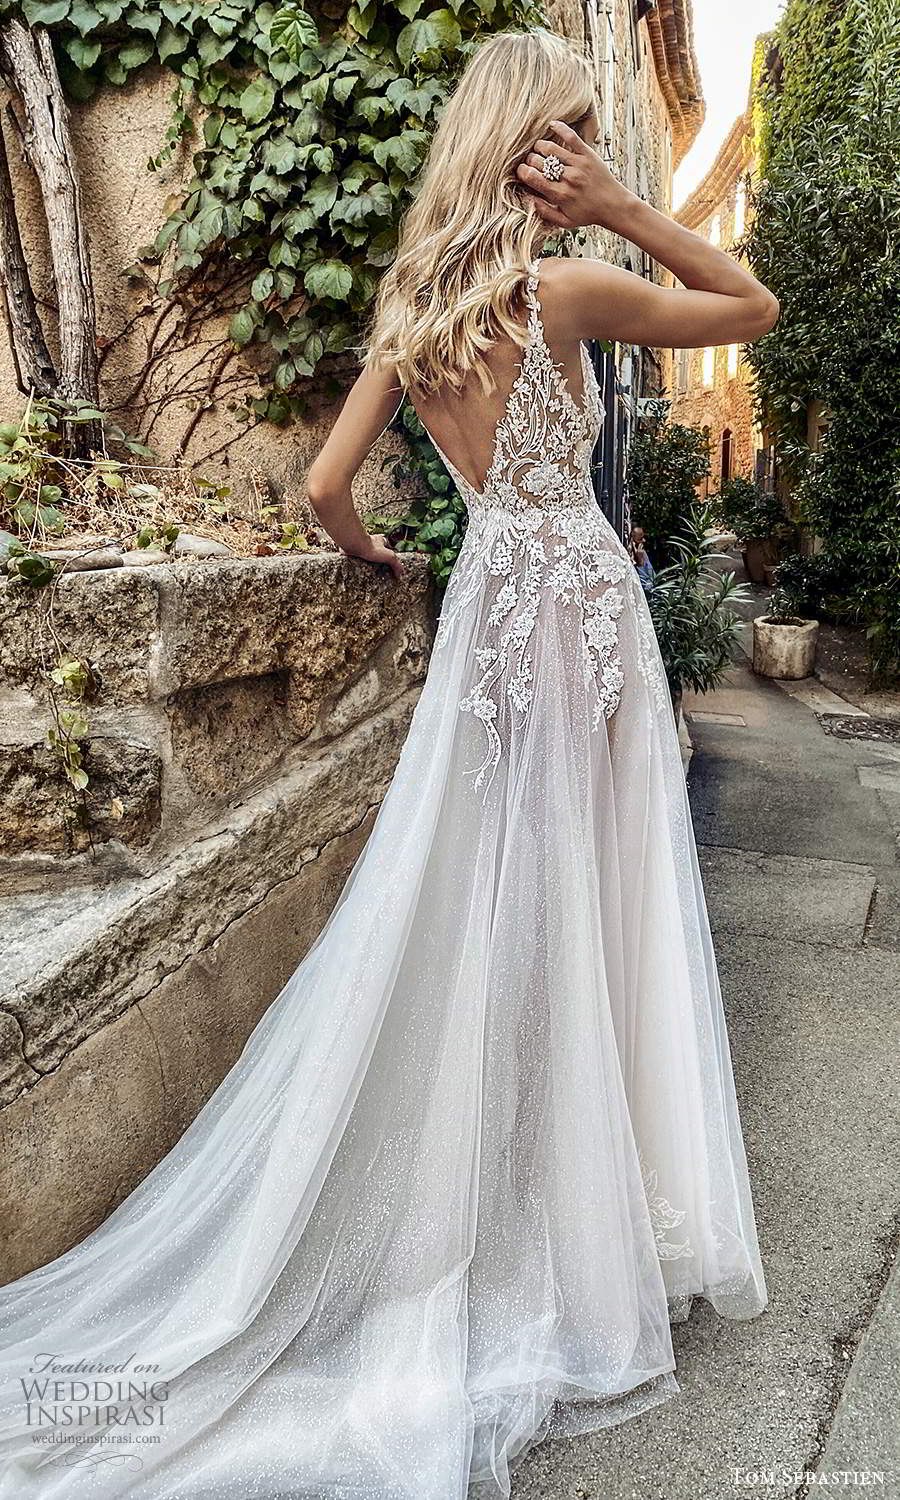 tom sebastien 2021 bridal provence sleeveless straps plunging v neckline embellished lace neckline a line ball gown wedding dress slit skirt chapel train v back (12) bv